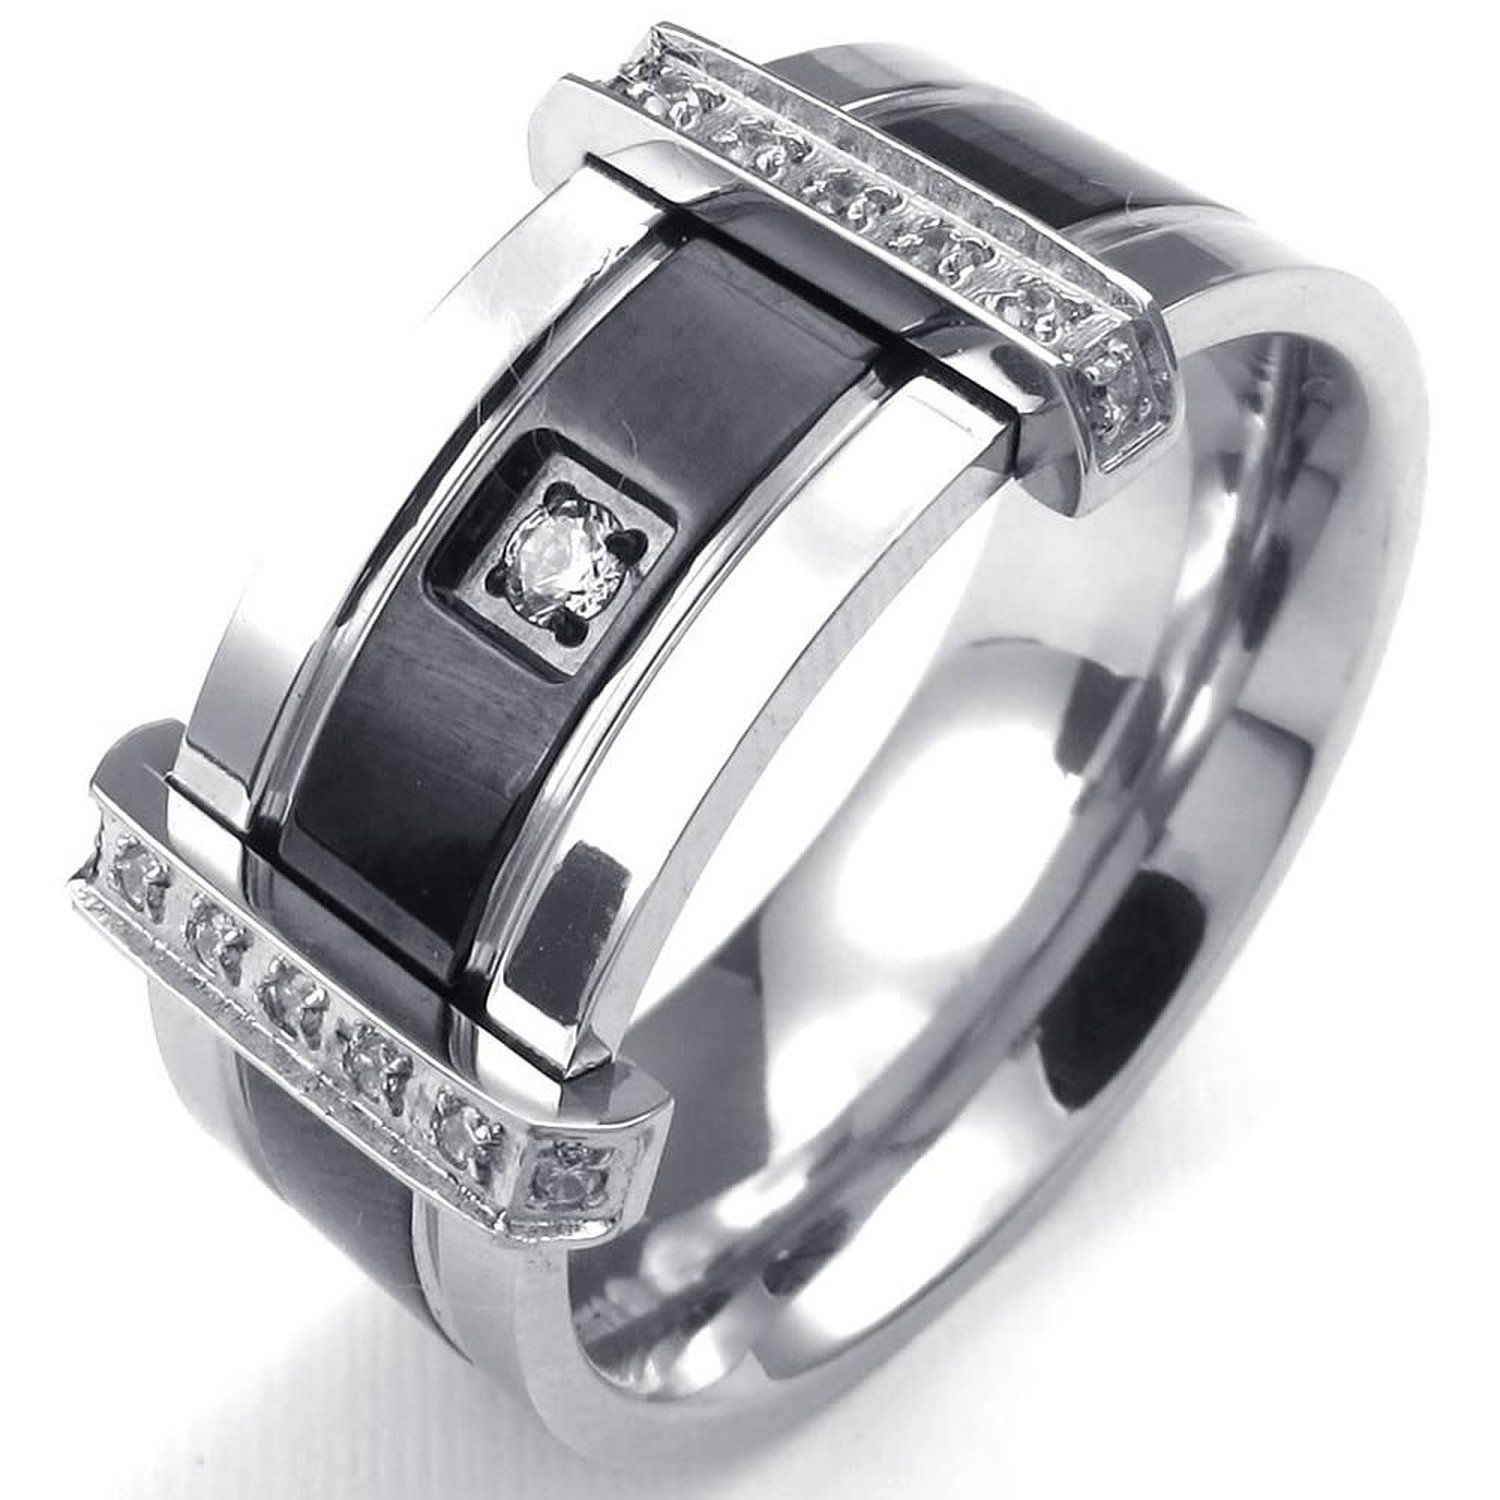 Best Of Mens Wedding Rings Cartier